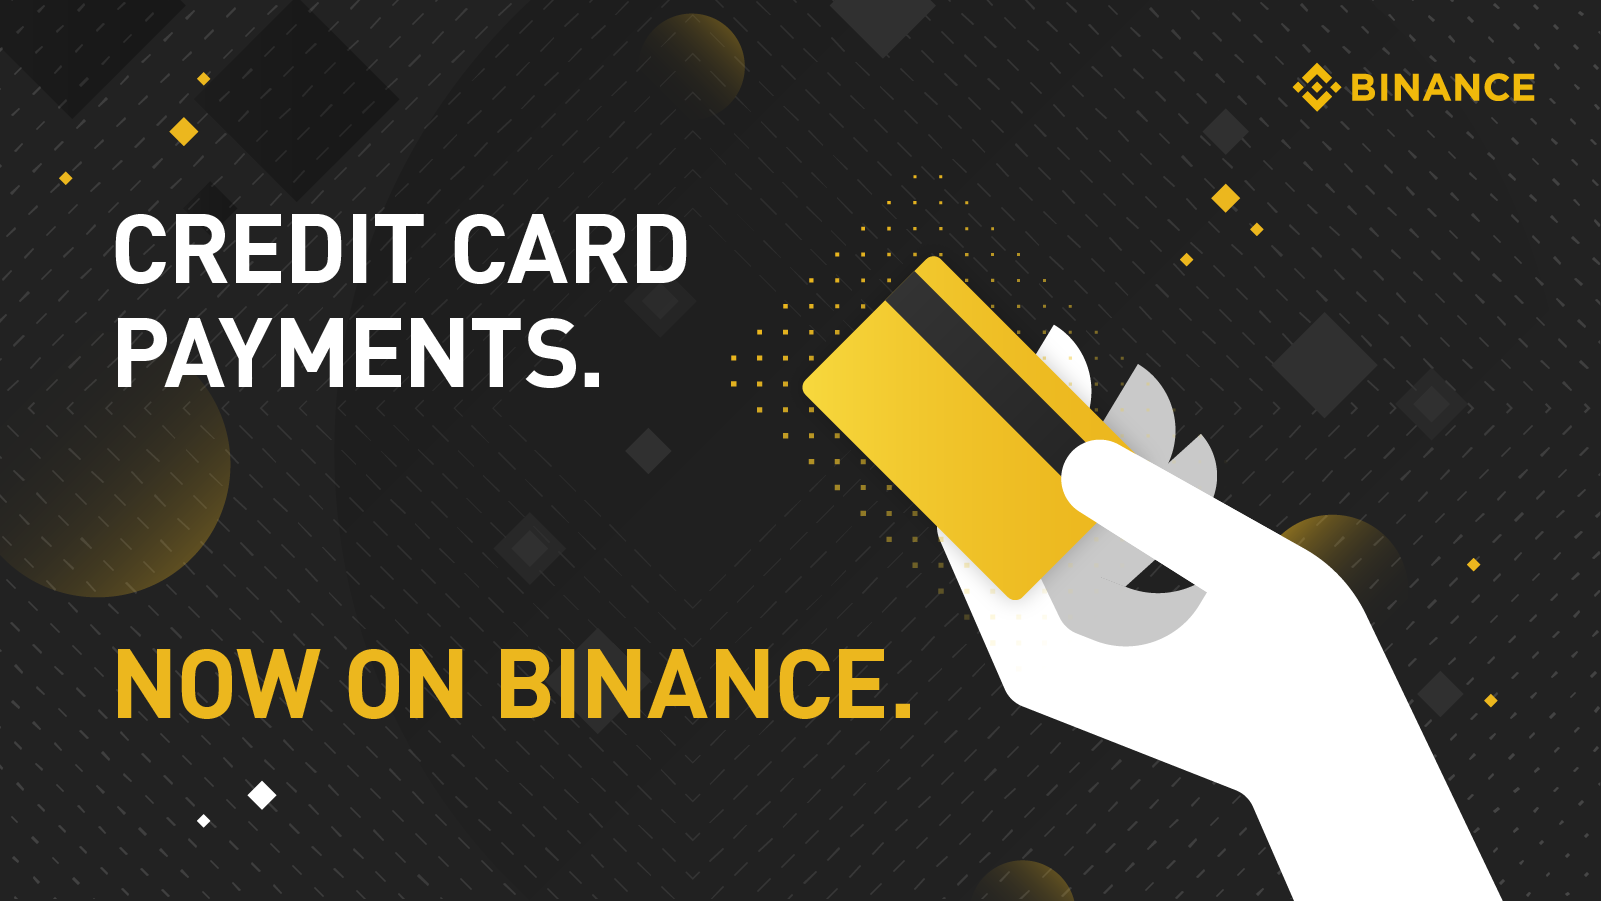 How to Buy Crypto with Credit Card on Binance video